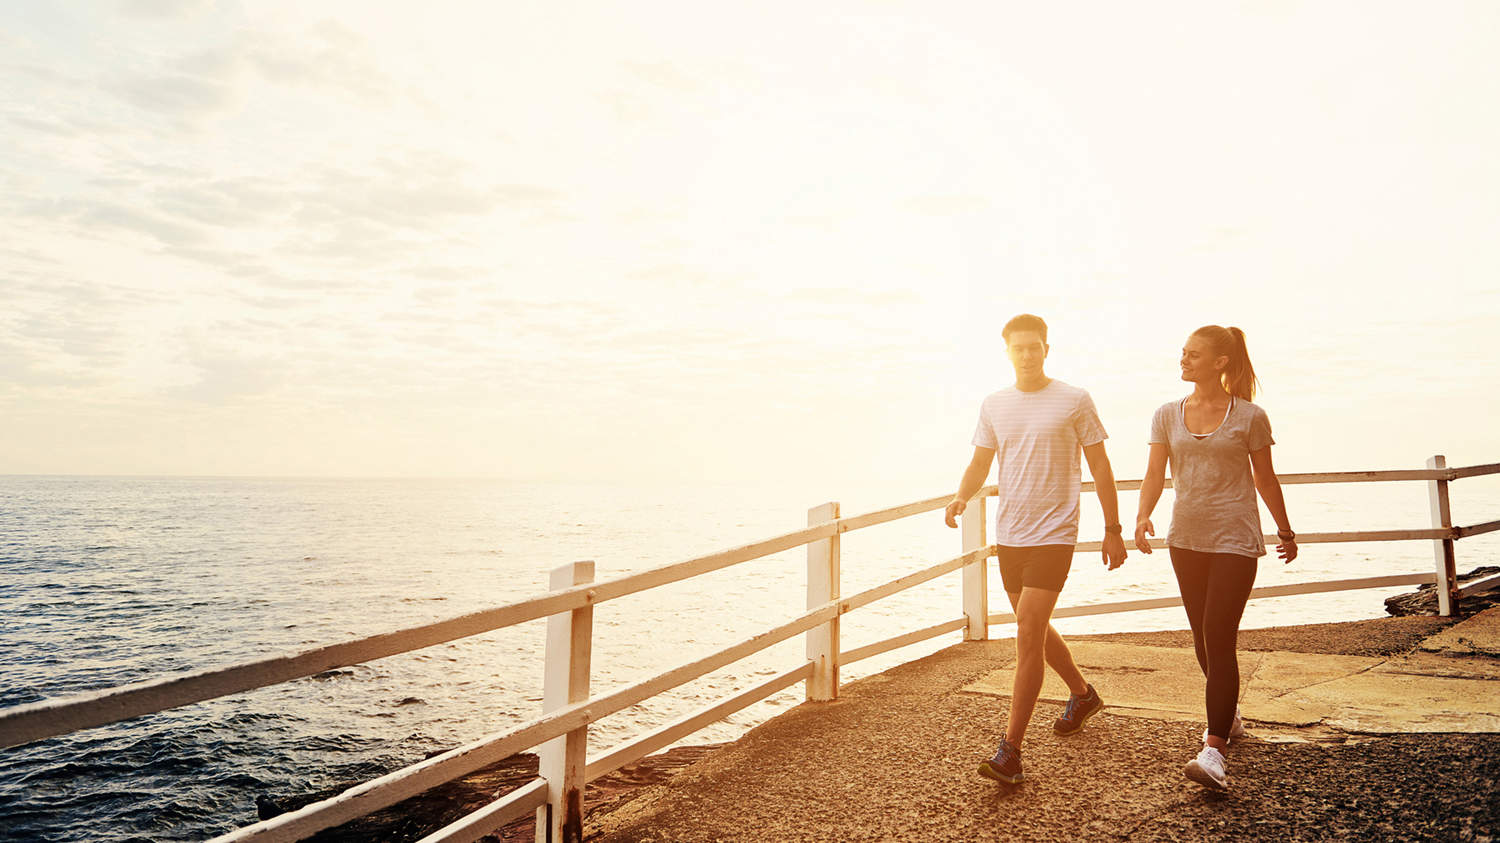 4 Reasons a Daily Walking Habit Is Worth It